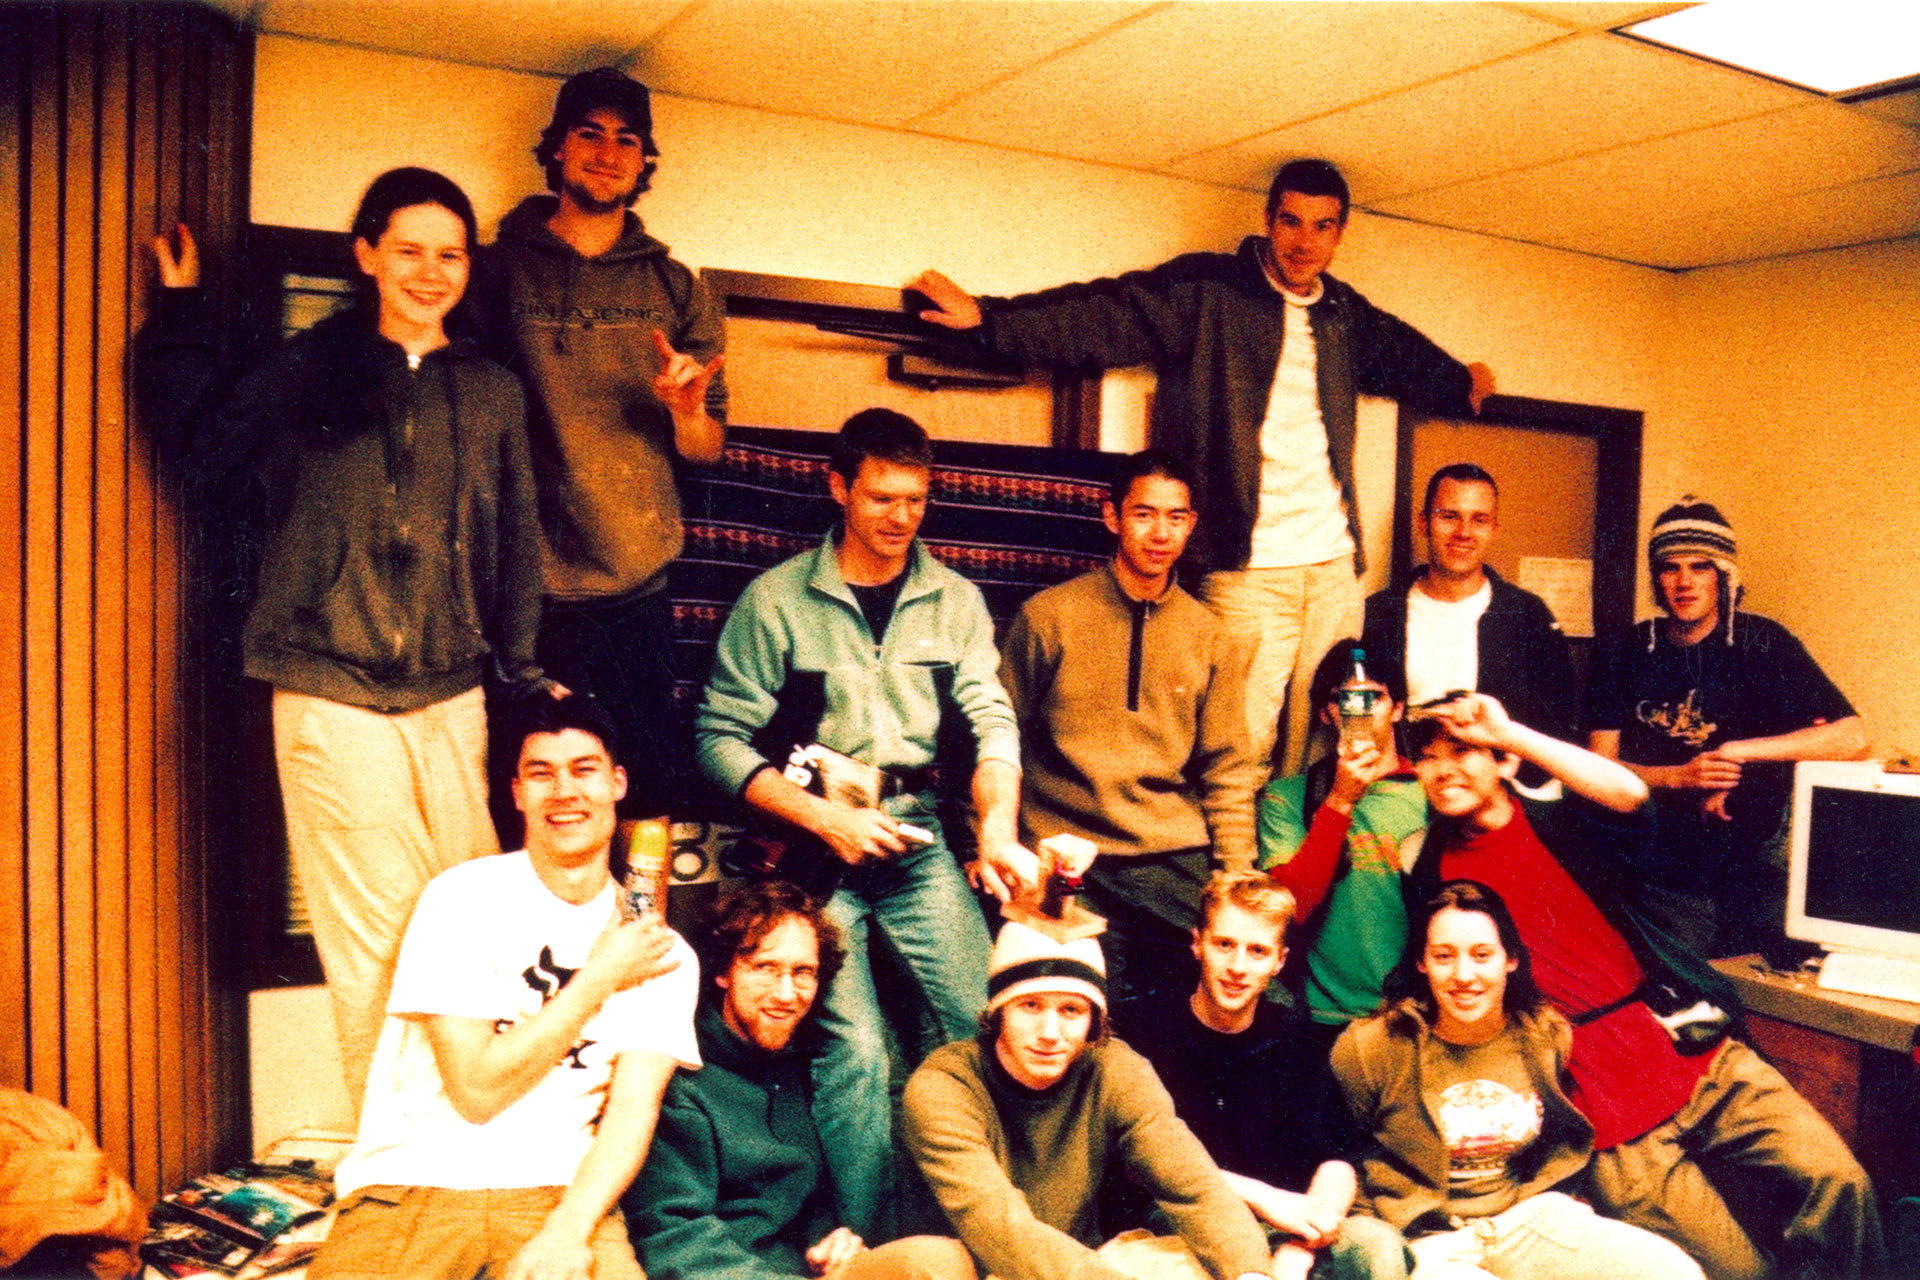 Comp 1 participants. April 2004.